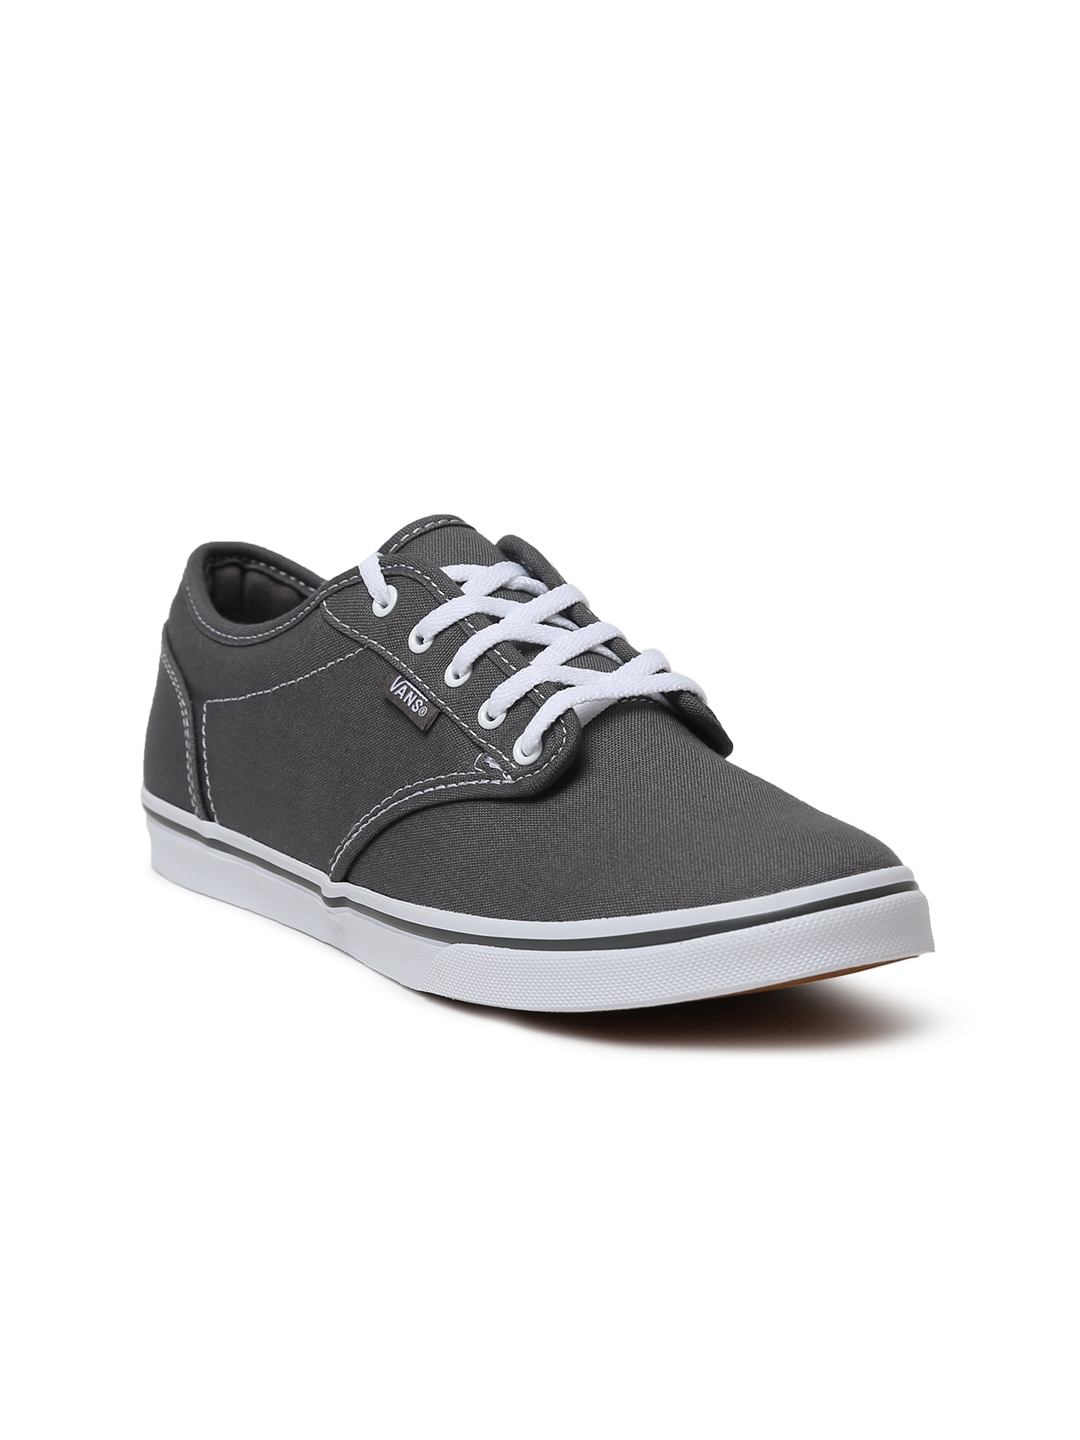 96eb216a983db7 Buy Vans Women Grey Atwood Low Sneakers - Casual Shoes for Women ...